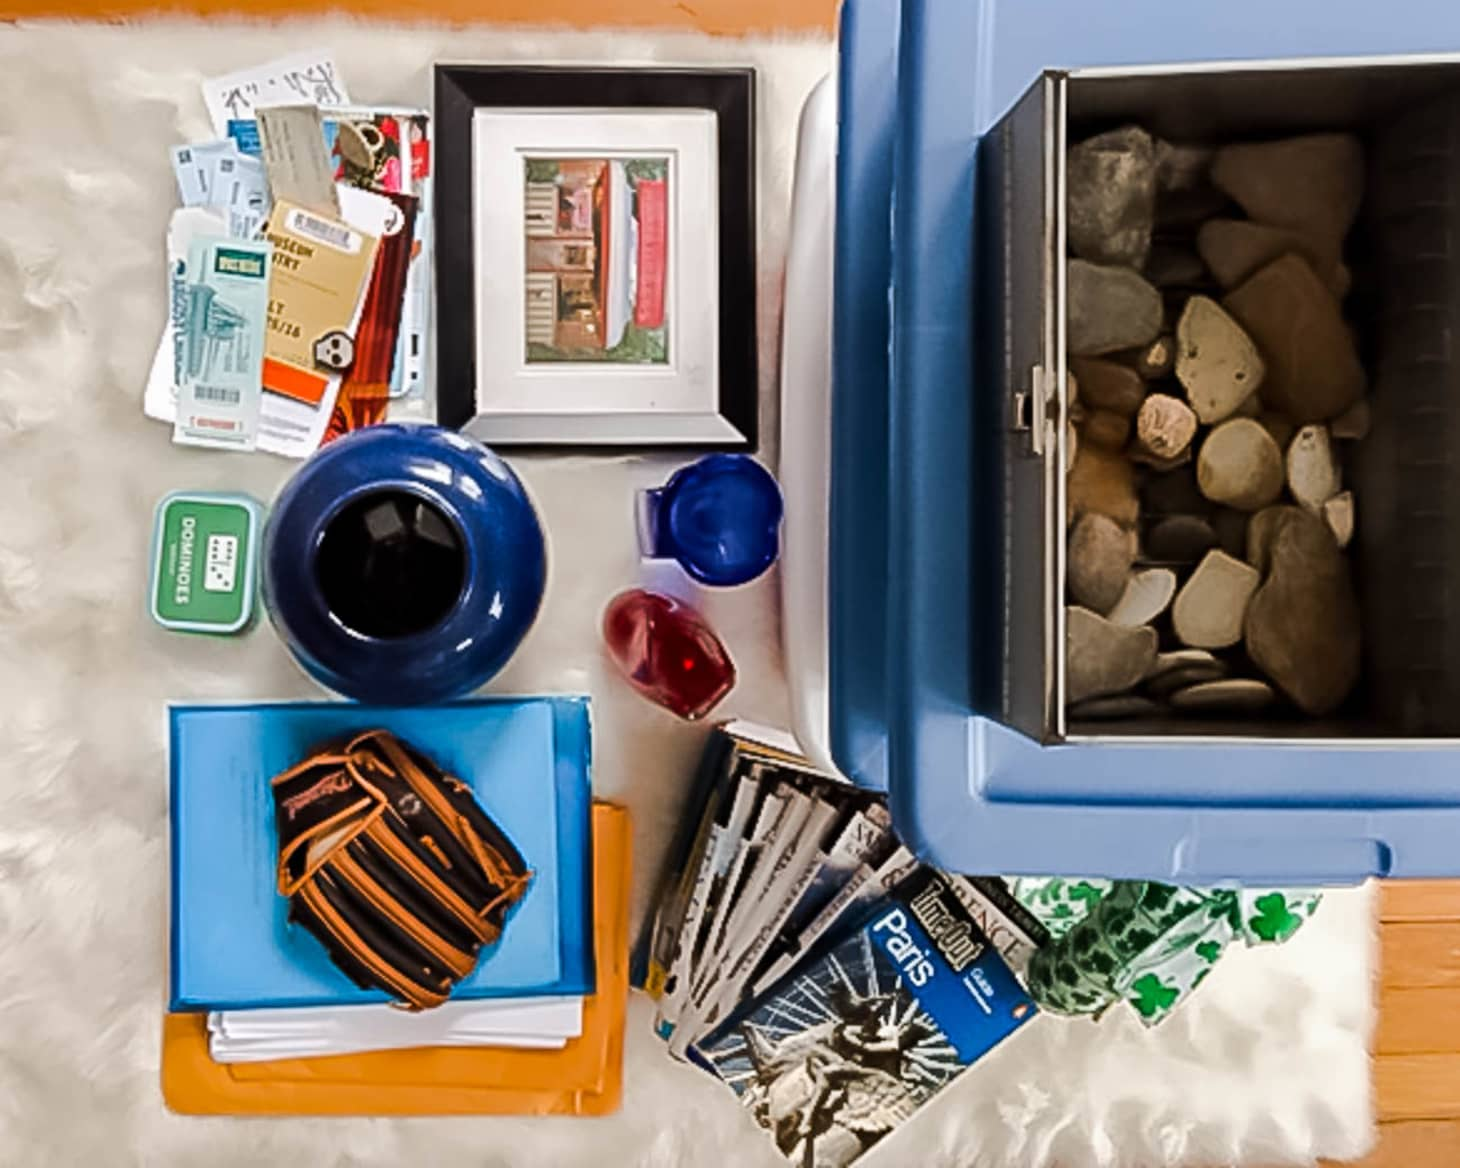 Getting Rid of Sentimental Clutter, Even When It's Really, Really